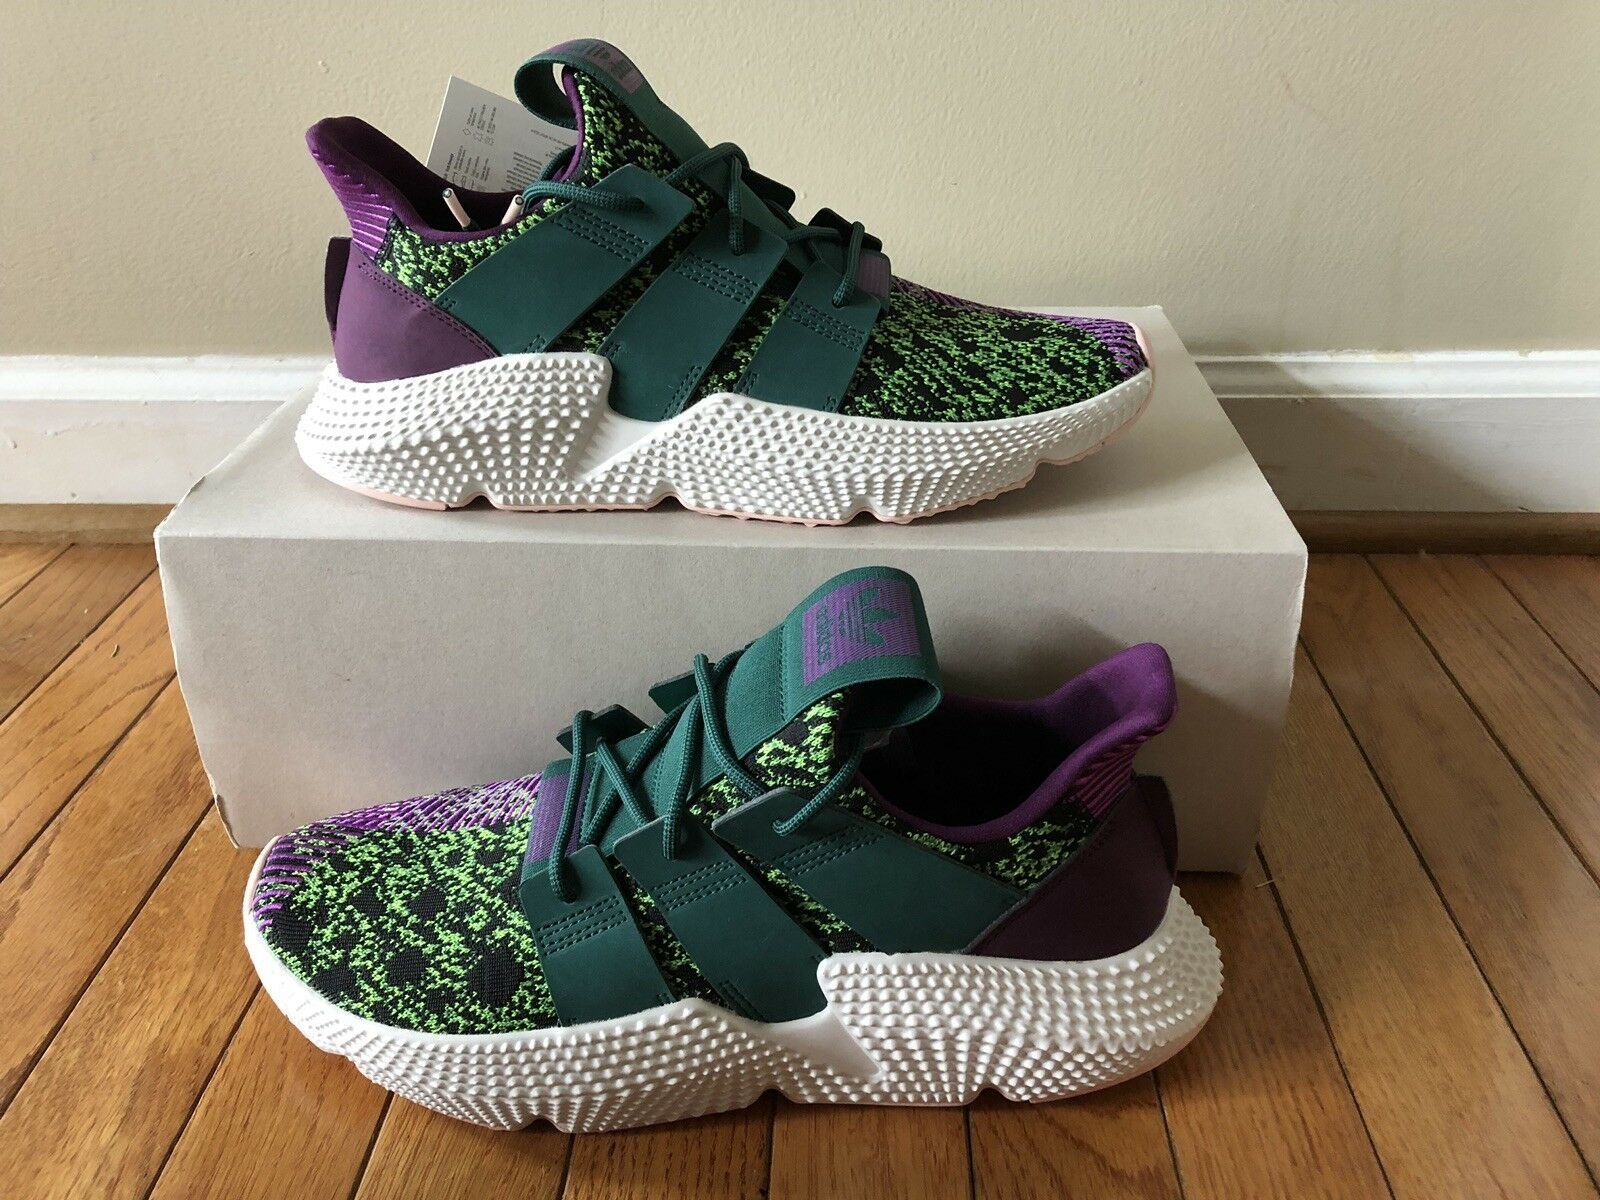 New Adidas x Dragon Ball Z DBZ Prophere shoes Sneakers  Cell (D97053)